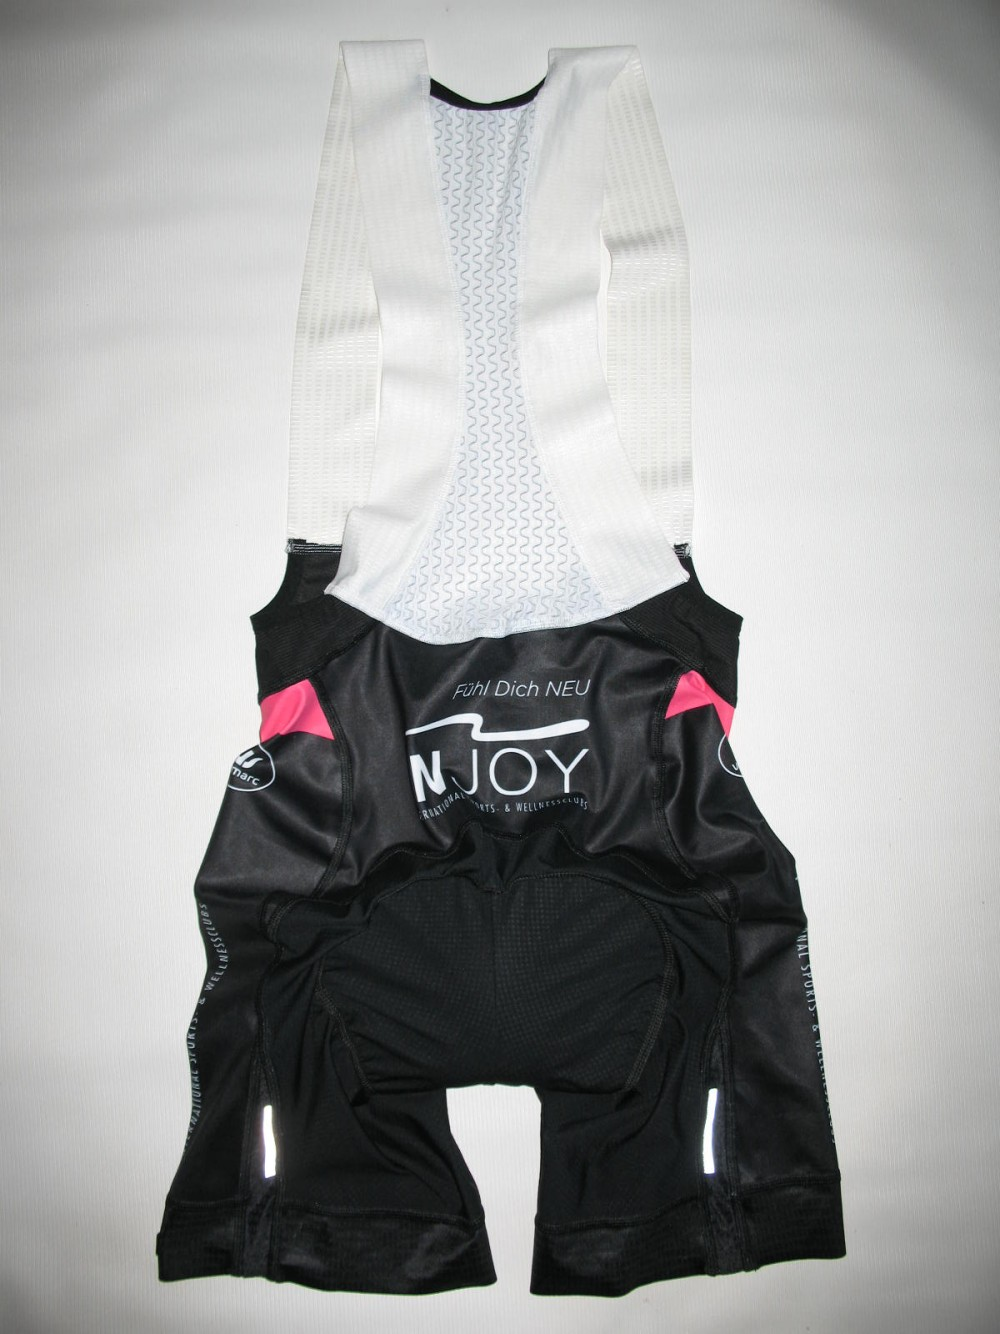 Велошорты VERMARC injoy prr cycling bib short (размер S) - 1